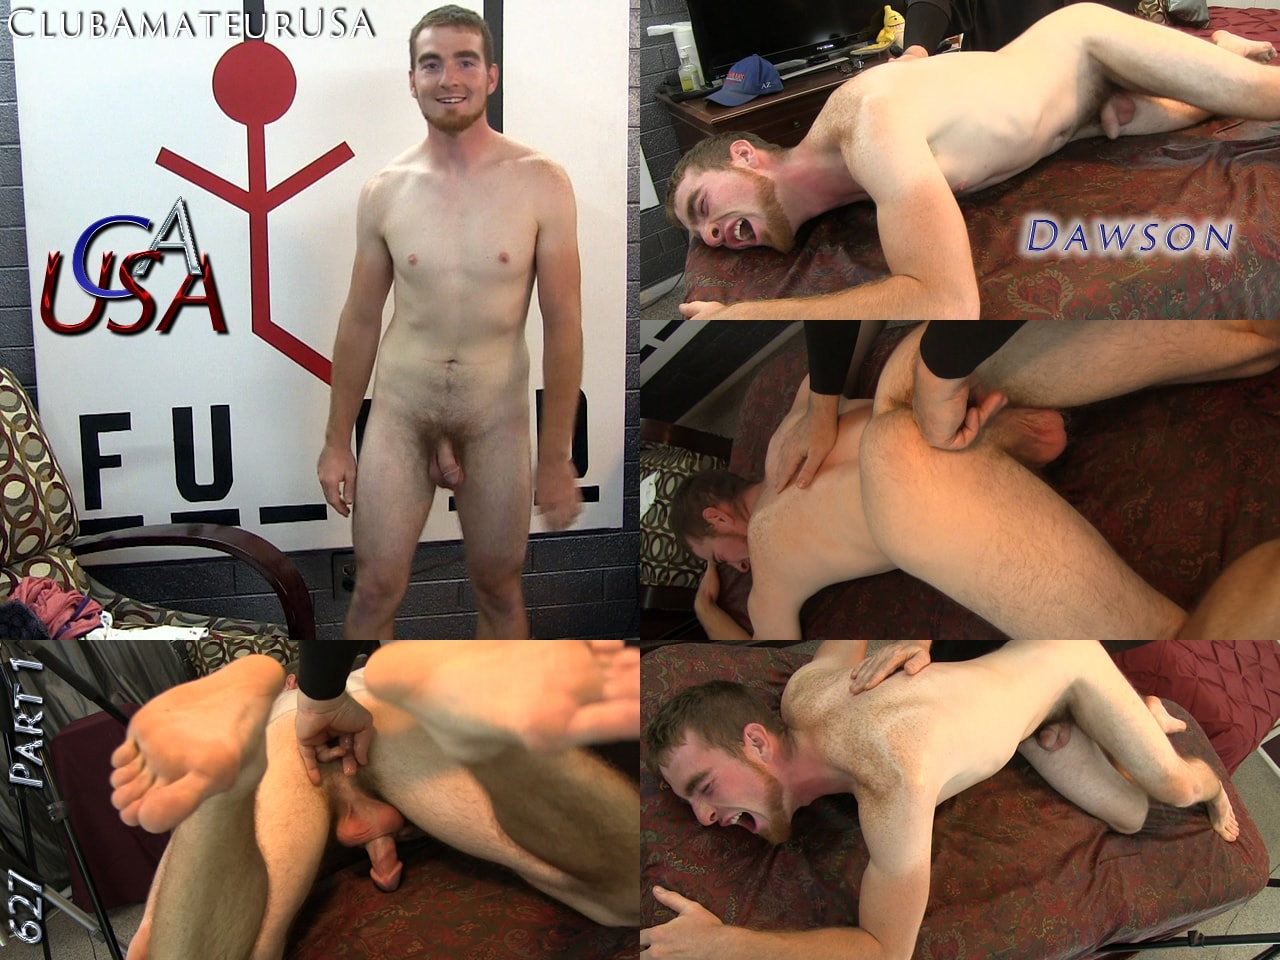 CAUSA 627 Dawson - Part 1 - ClubAmateurUSA Tits kissing porn